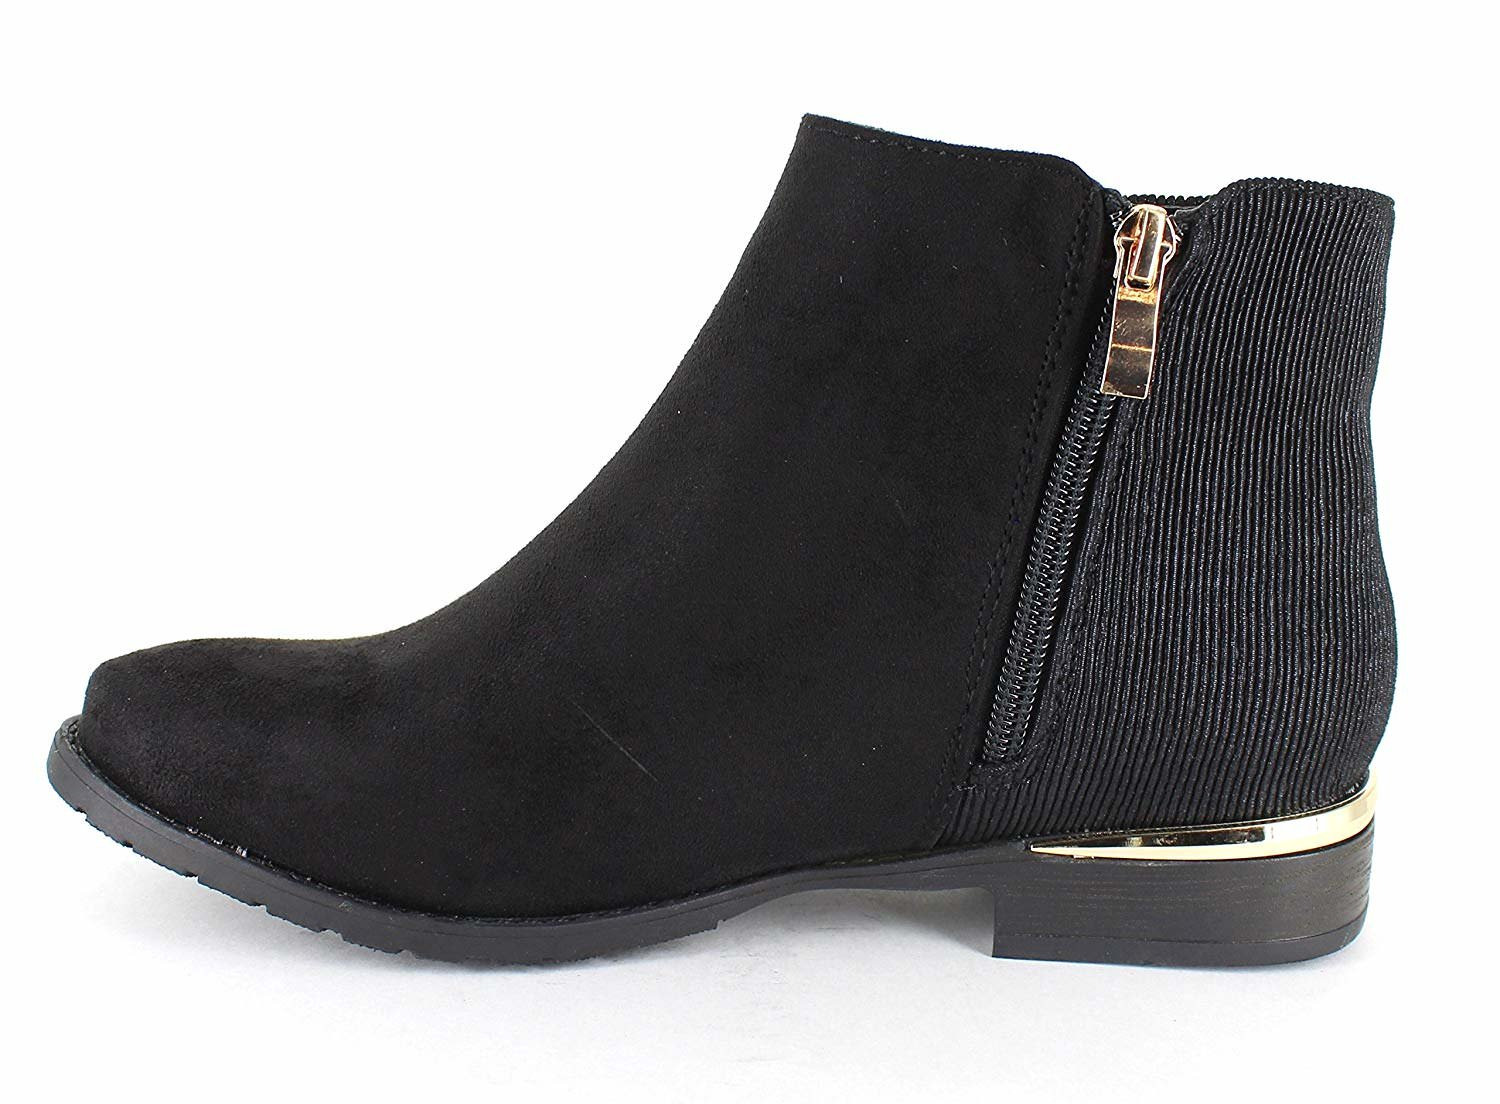 only U Casual Faux Boots Suede Gold Trim Ankle Boots Faux B07F9LHLJC 8 B(M) US|Black 428f11